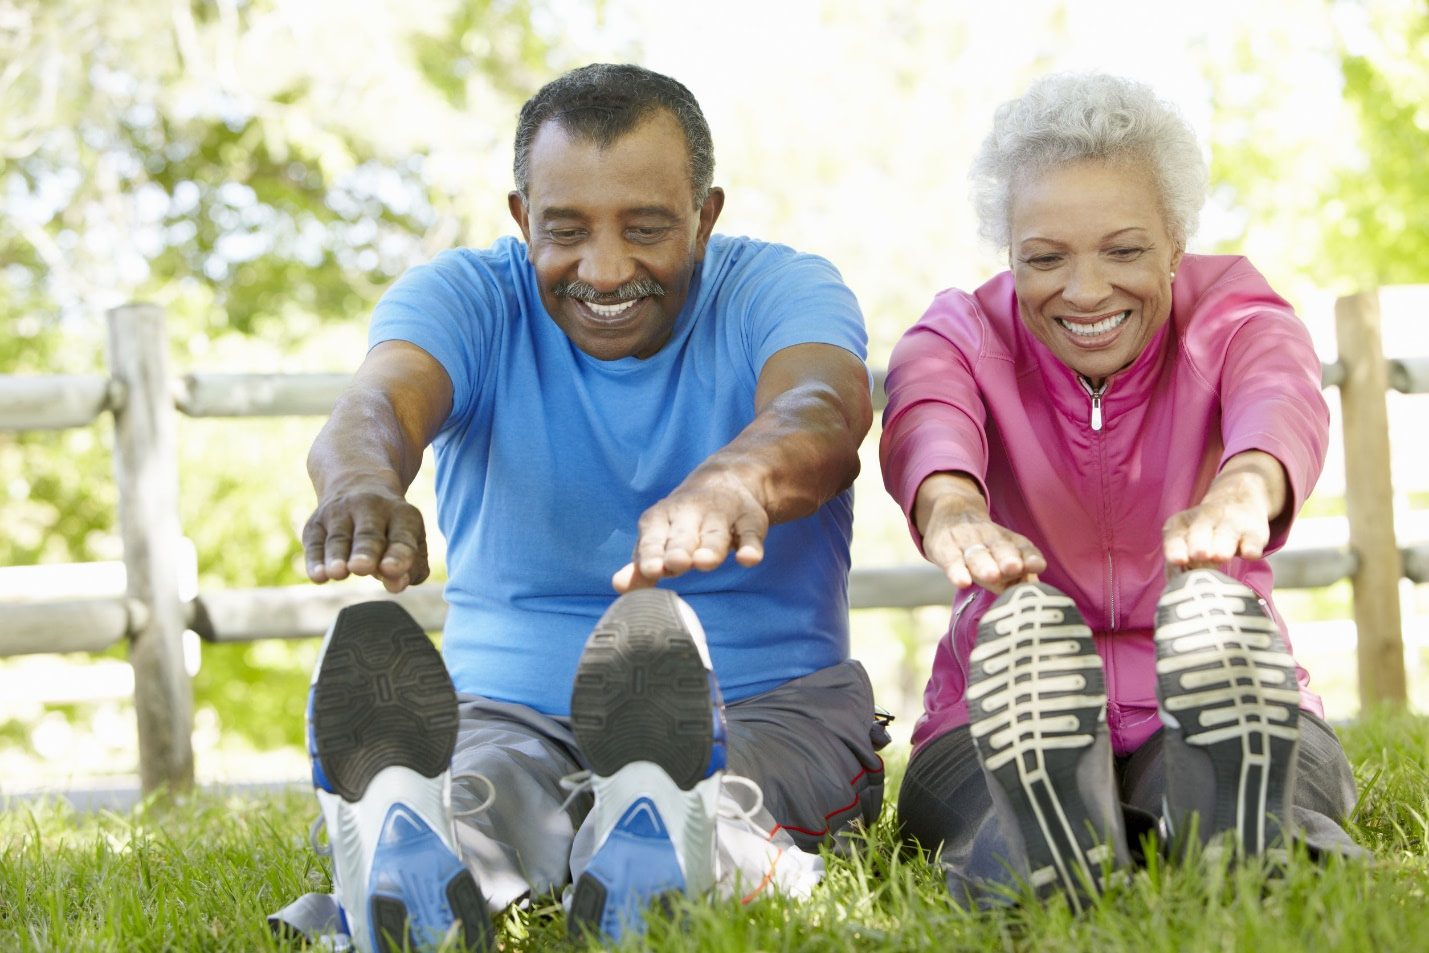 Don't forget to stretch before doing any exercises for seniors